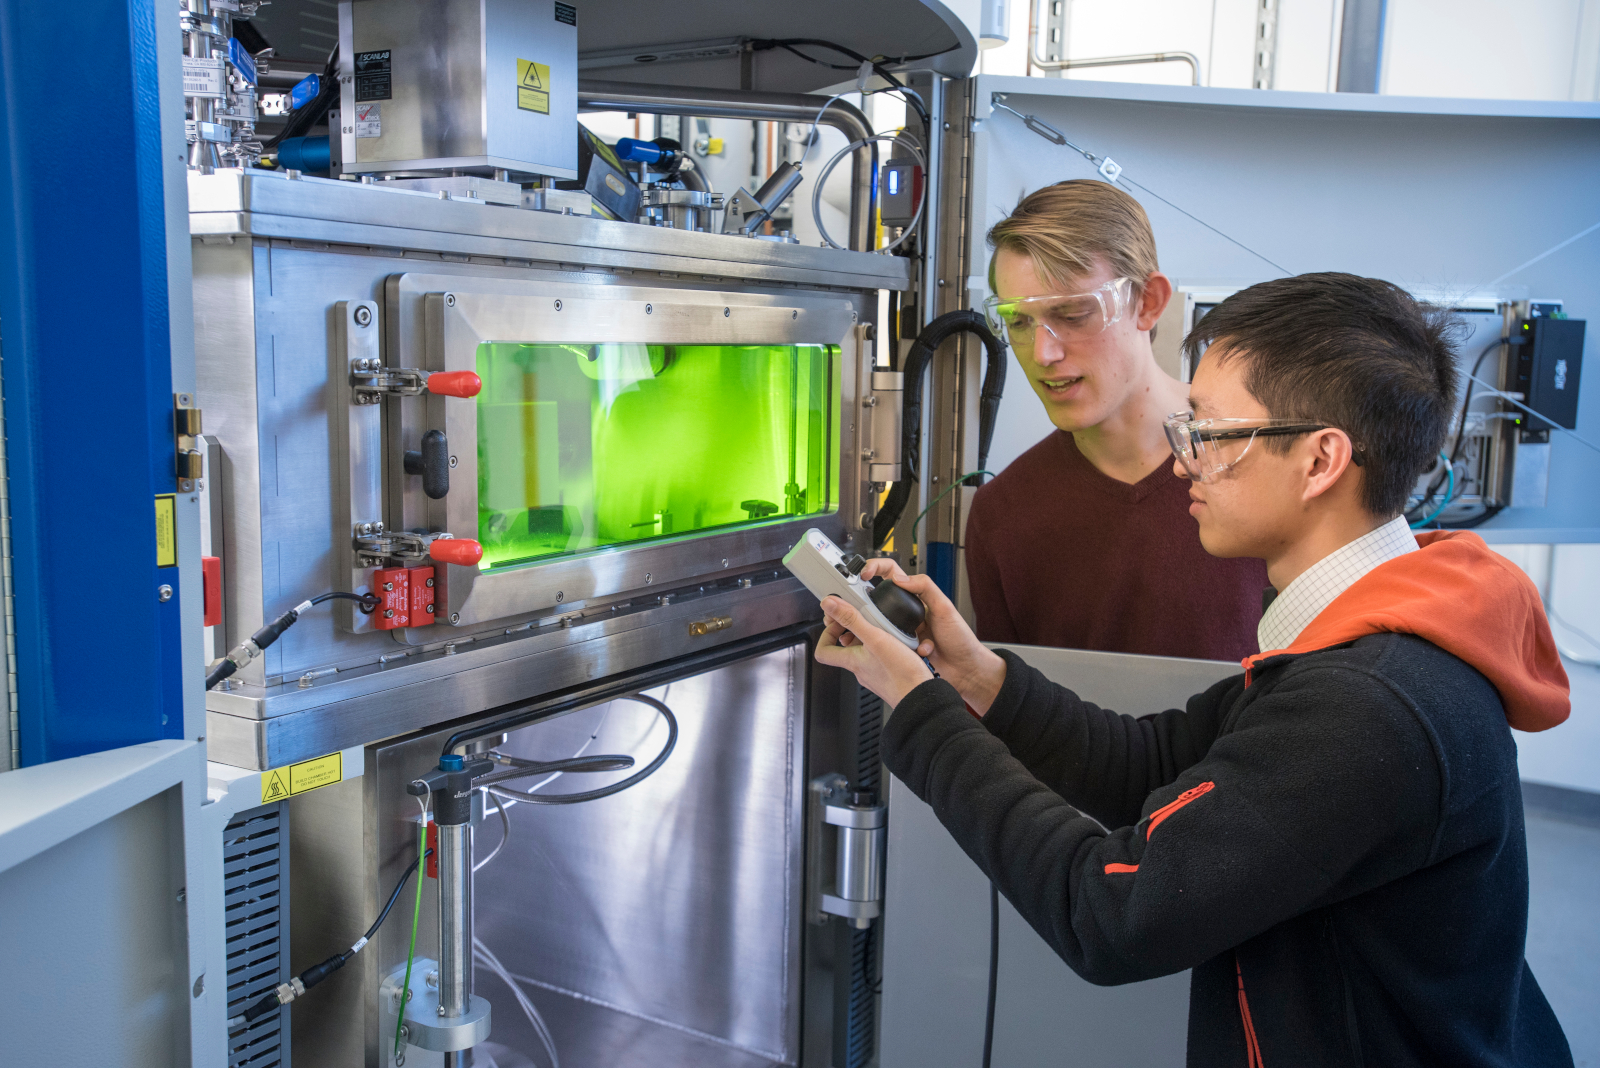 (front) Cain Hung, Graduate Student in Material Science and Engineering and Andrew Budd '16 (ENG) using an IPG Open-Architecture Metal Powder Bed Fusion System at the Innovation Partnership Building (IPB) on Dec. 5, 2018. (Al Ferreira/UConn Photo)